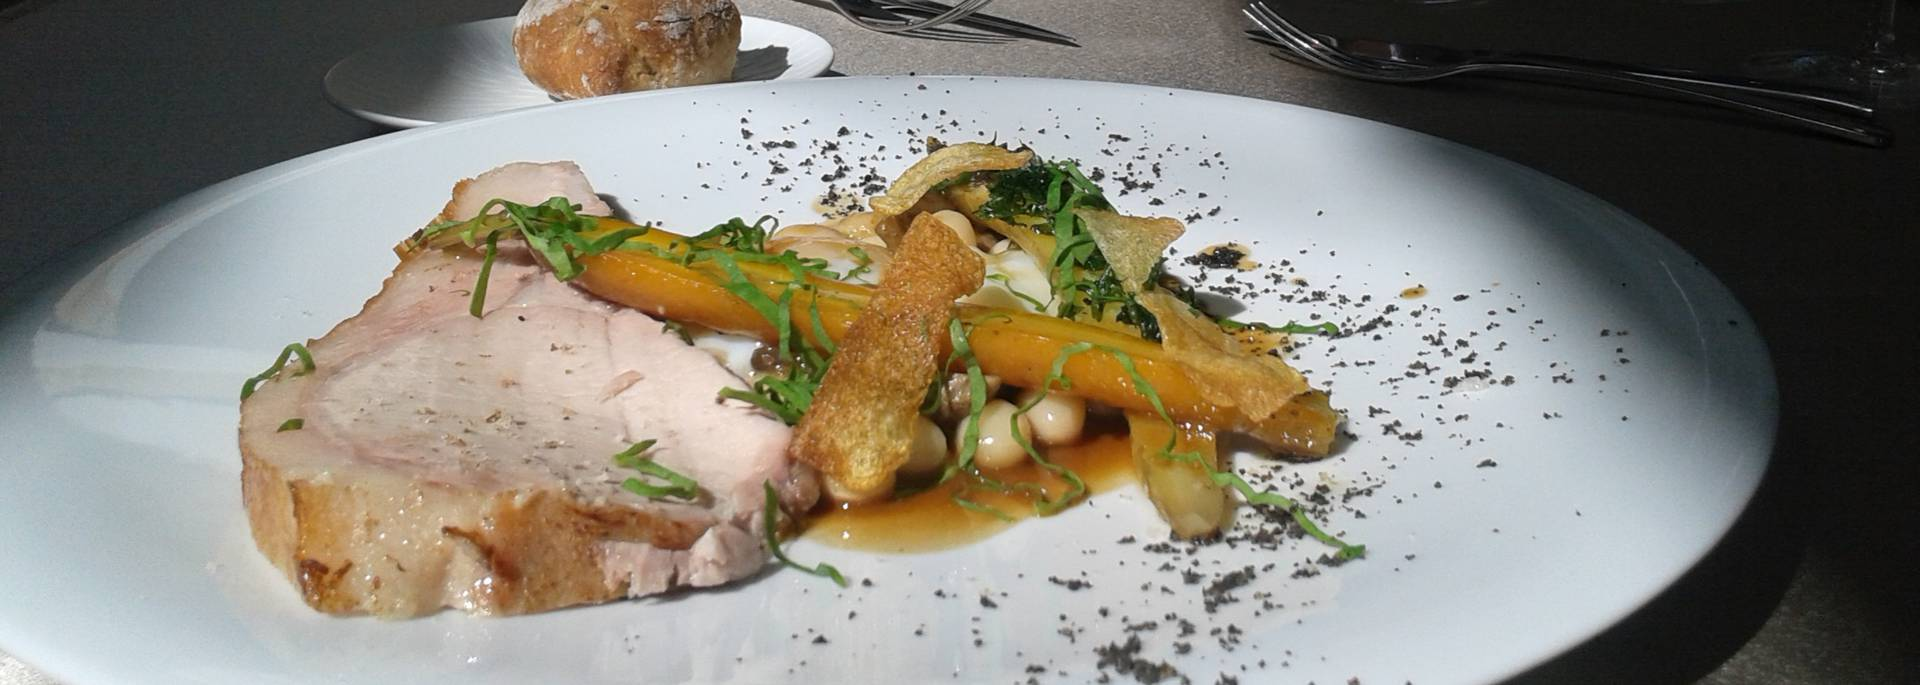 Dish at the ASSA in Blois